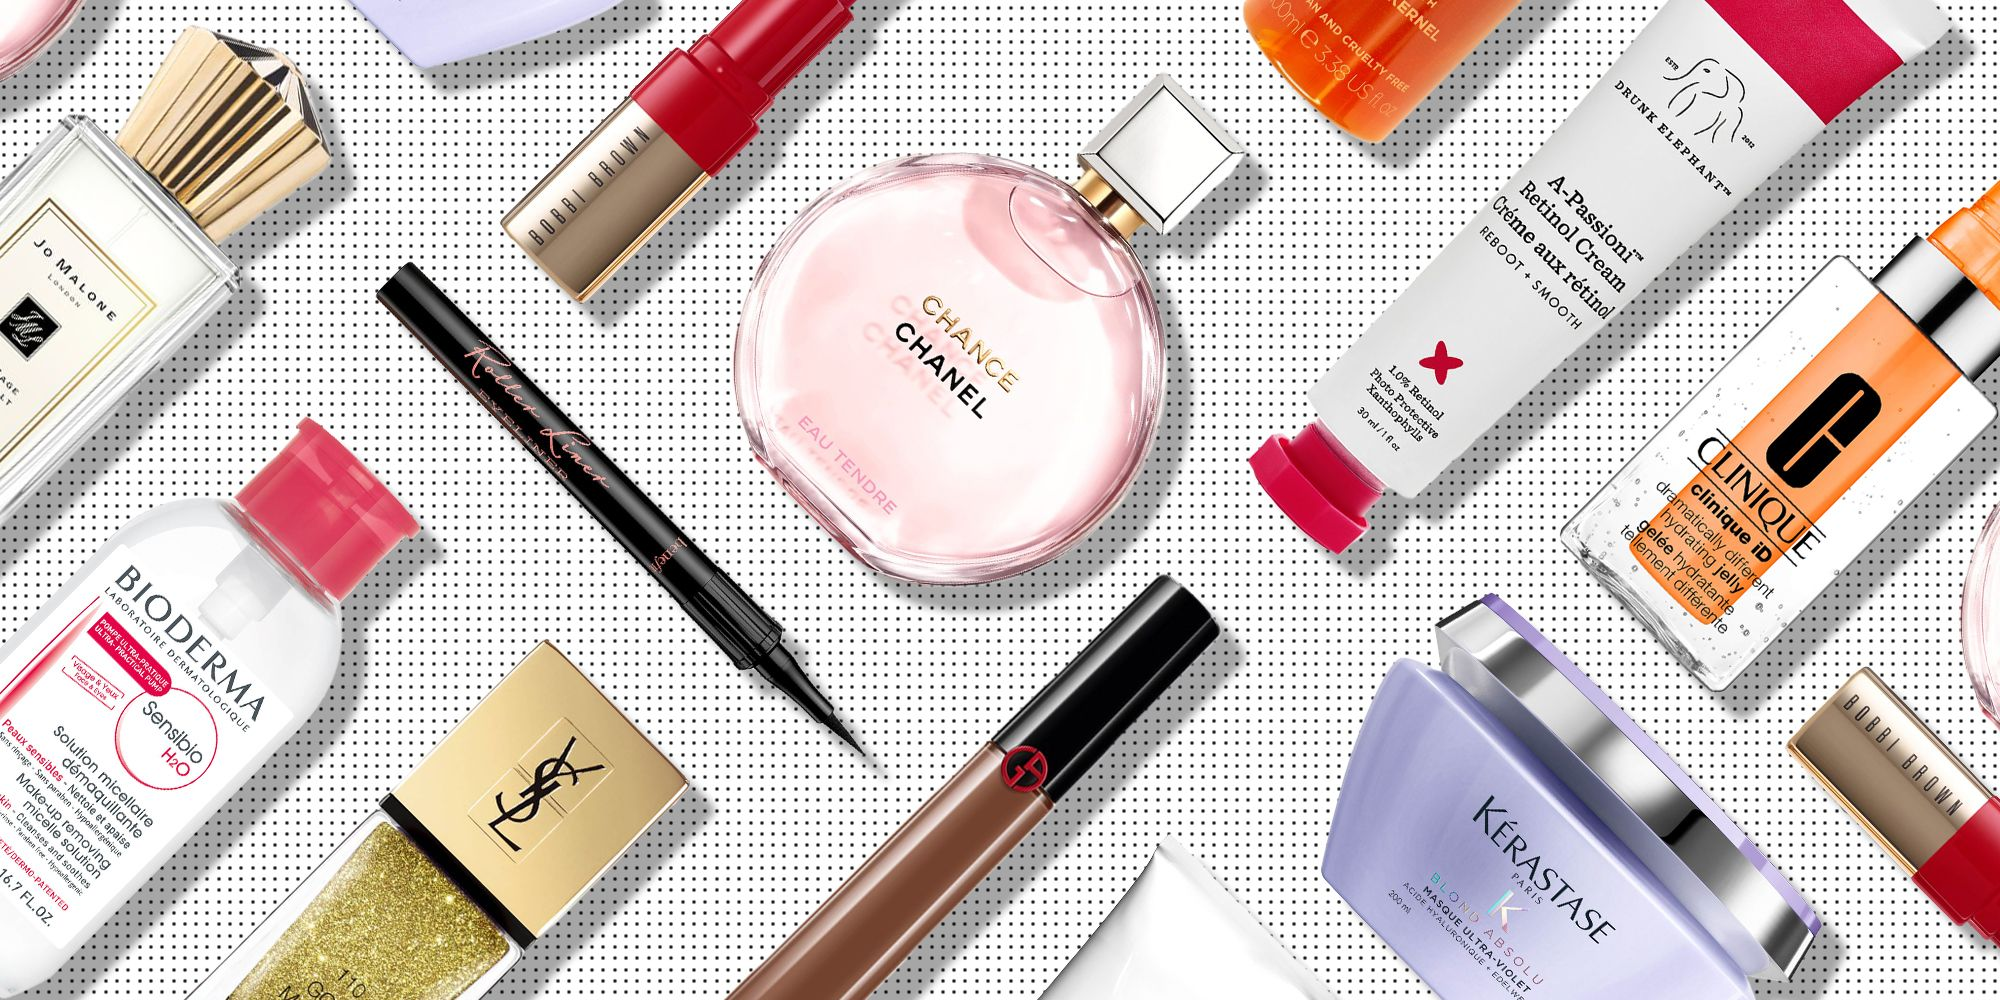 January Beauty Haul: Team ELLE's Pick Of The Best New Beauty Products This Month